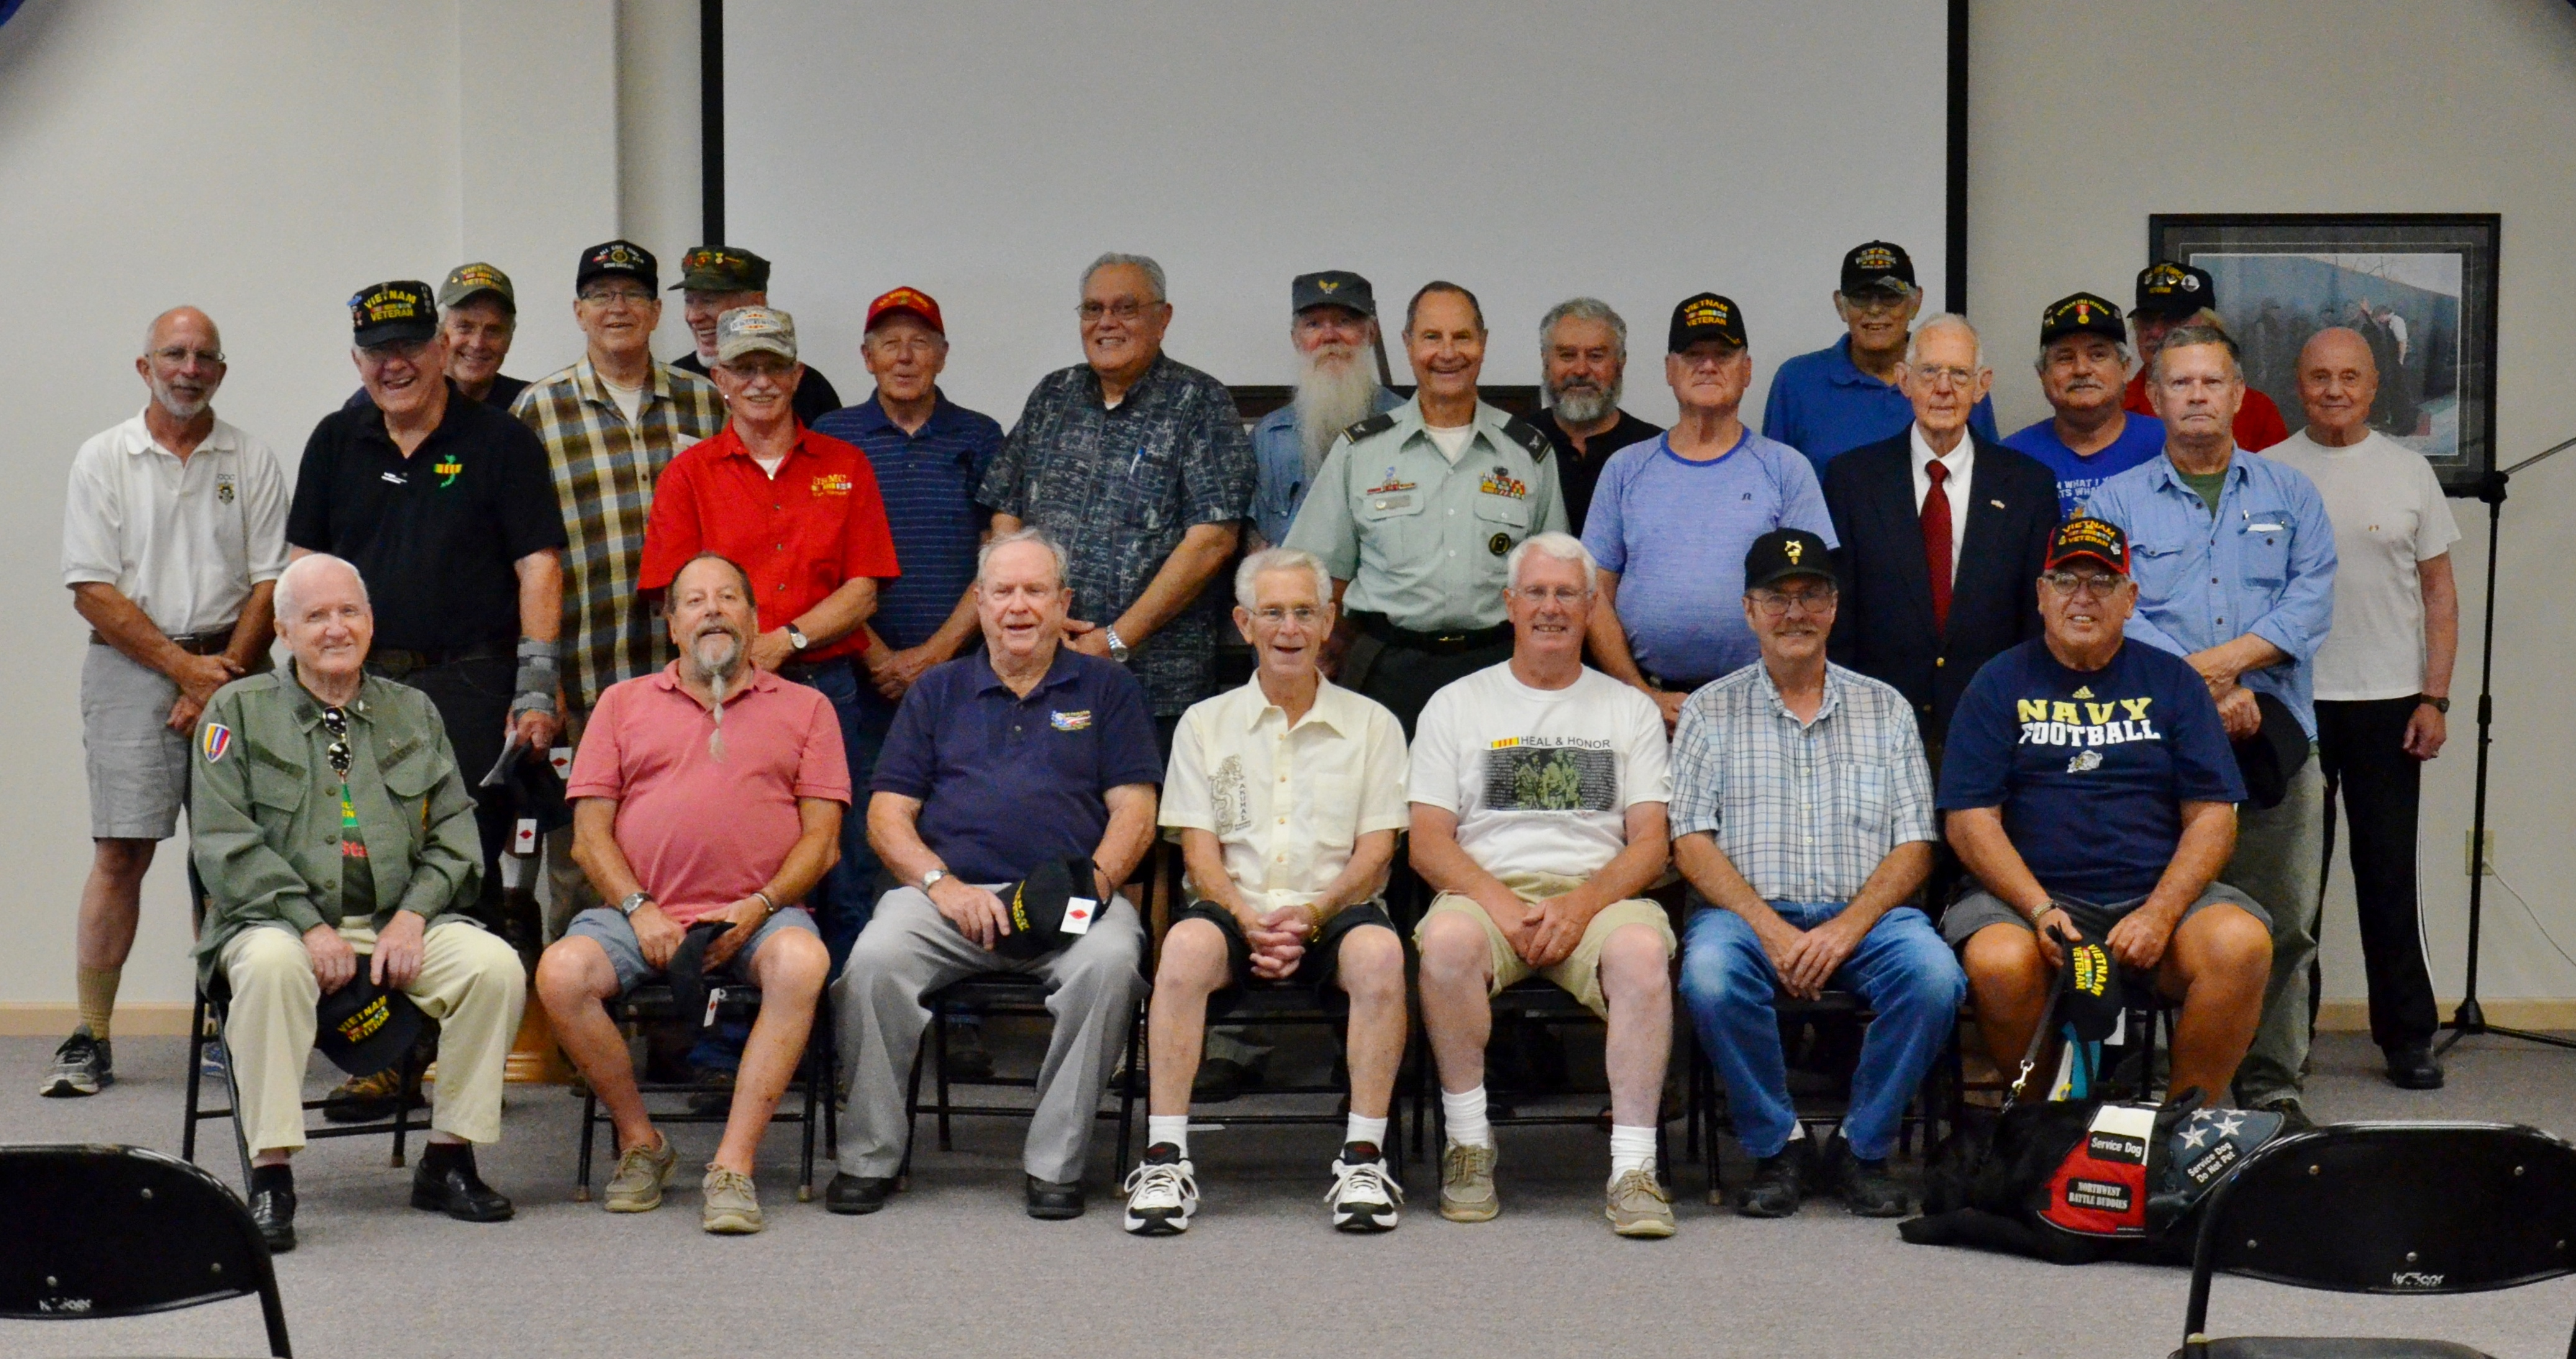 Vietnam Veterans Remembrance Day Aug. 3rd